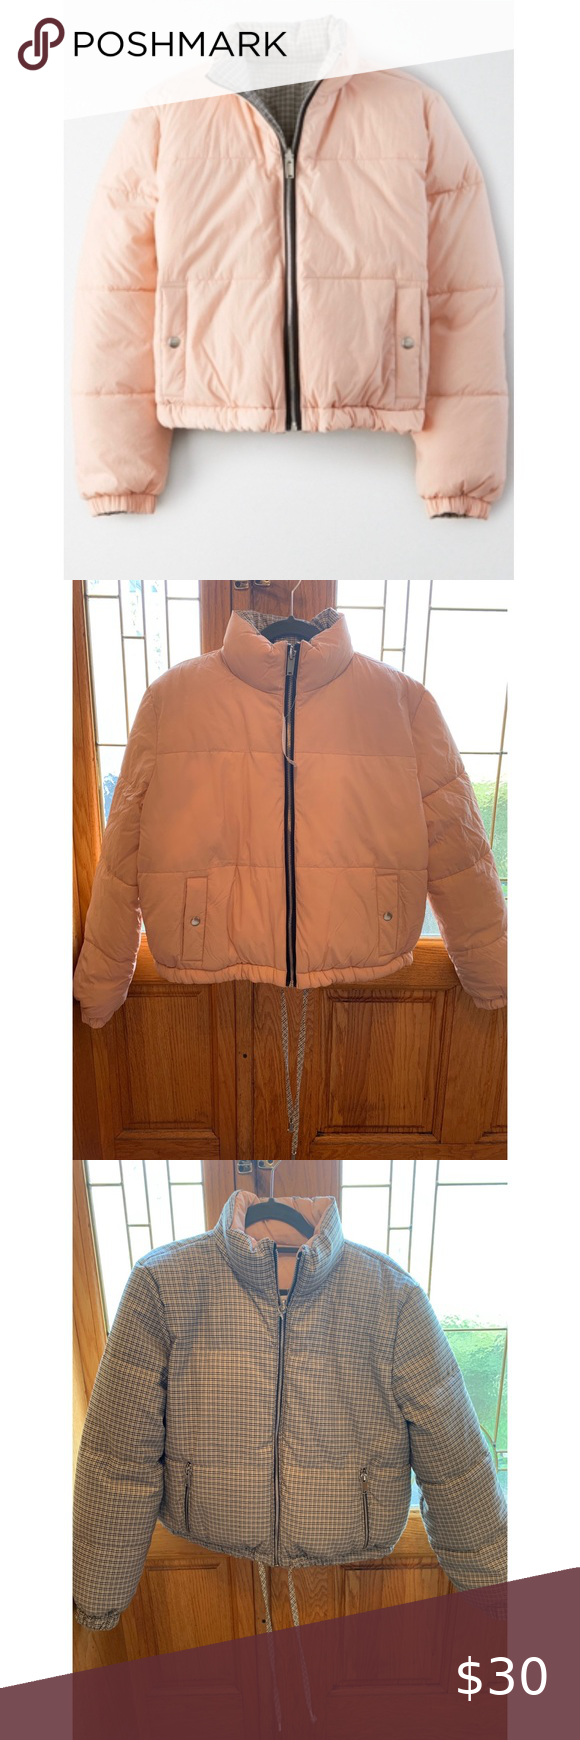 American Eagle Reversible Puffer Jacket Patterned Bomber Jacket Clothes Design Selling Clothes [ 1740 x 580 Pixel ]